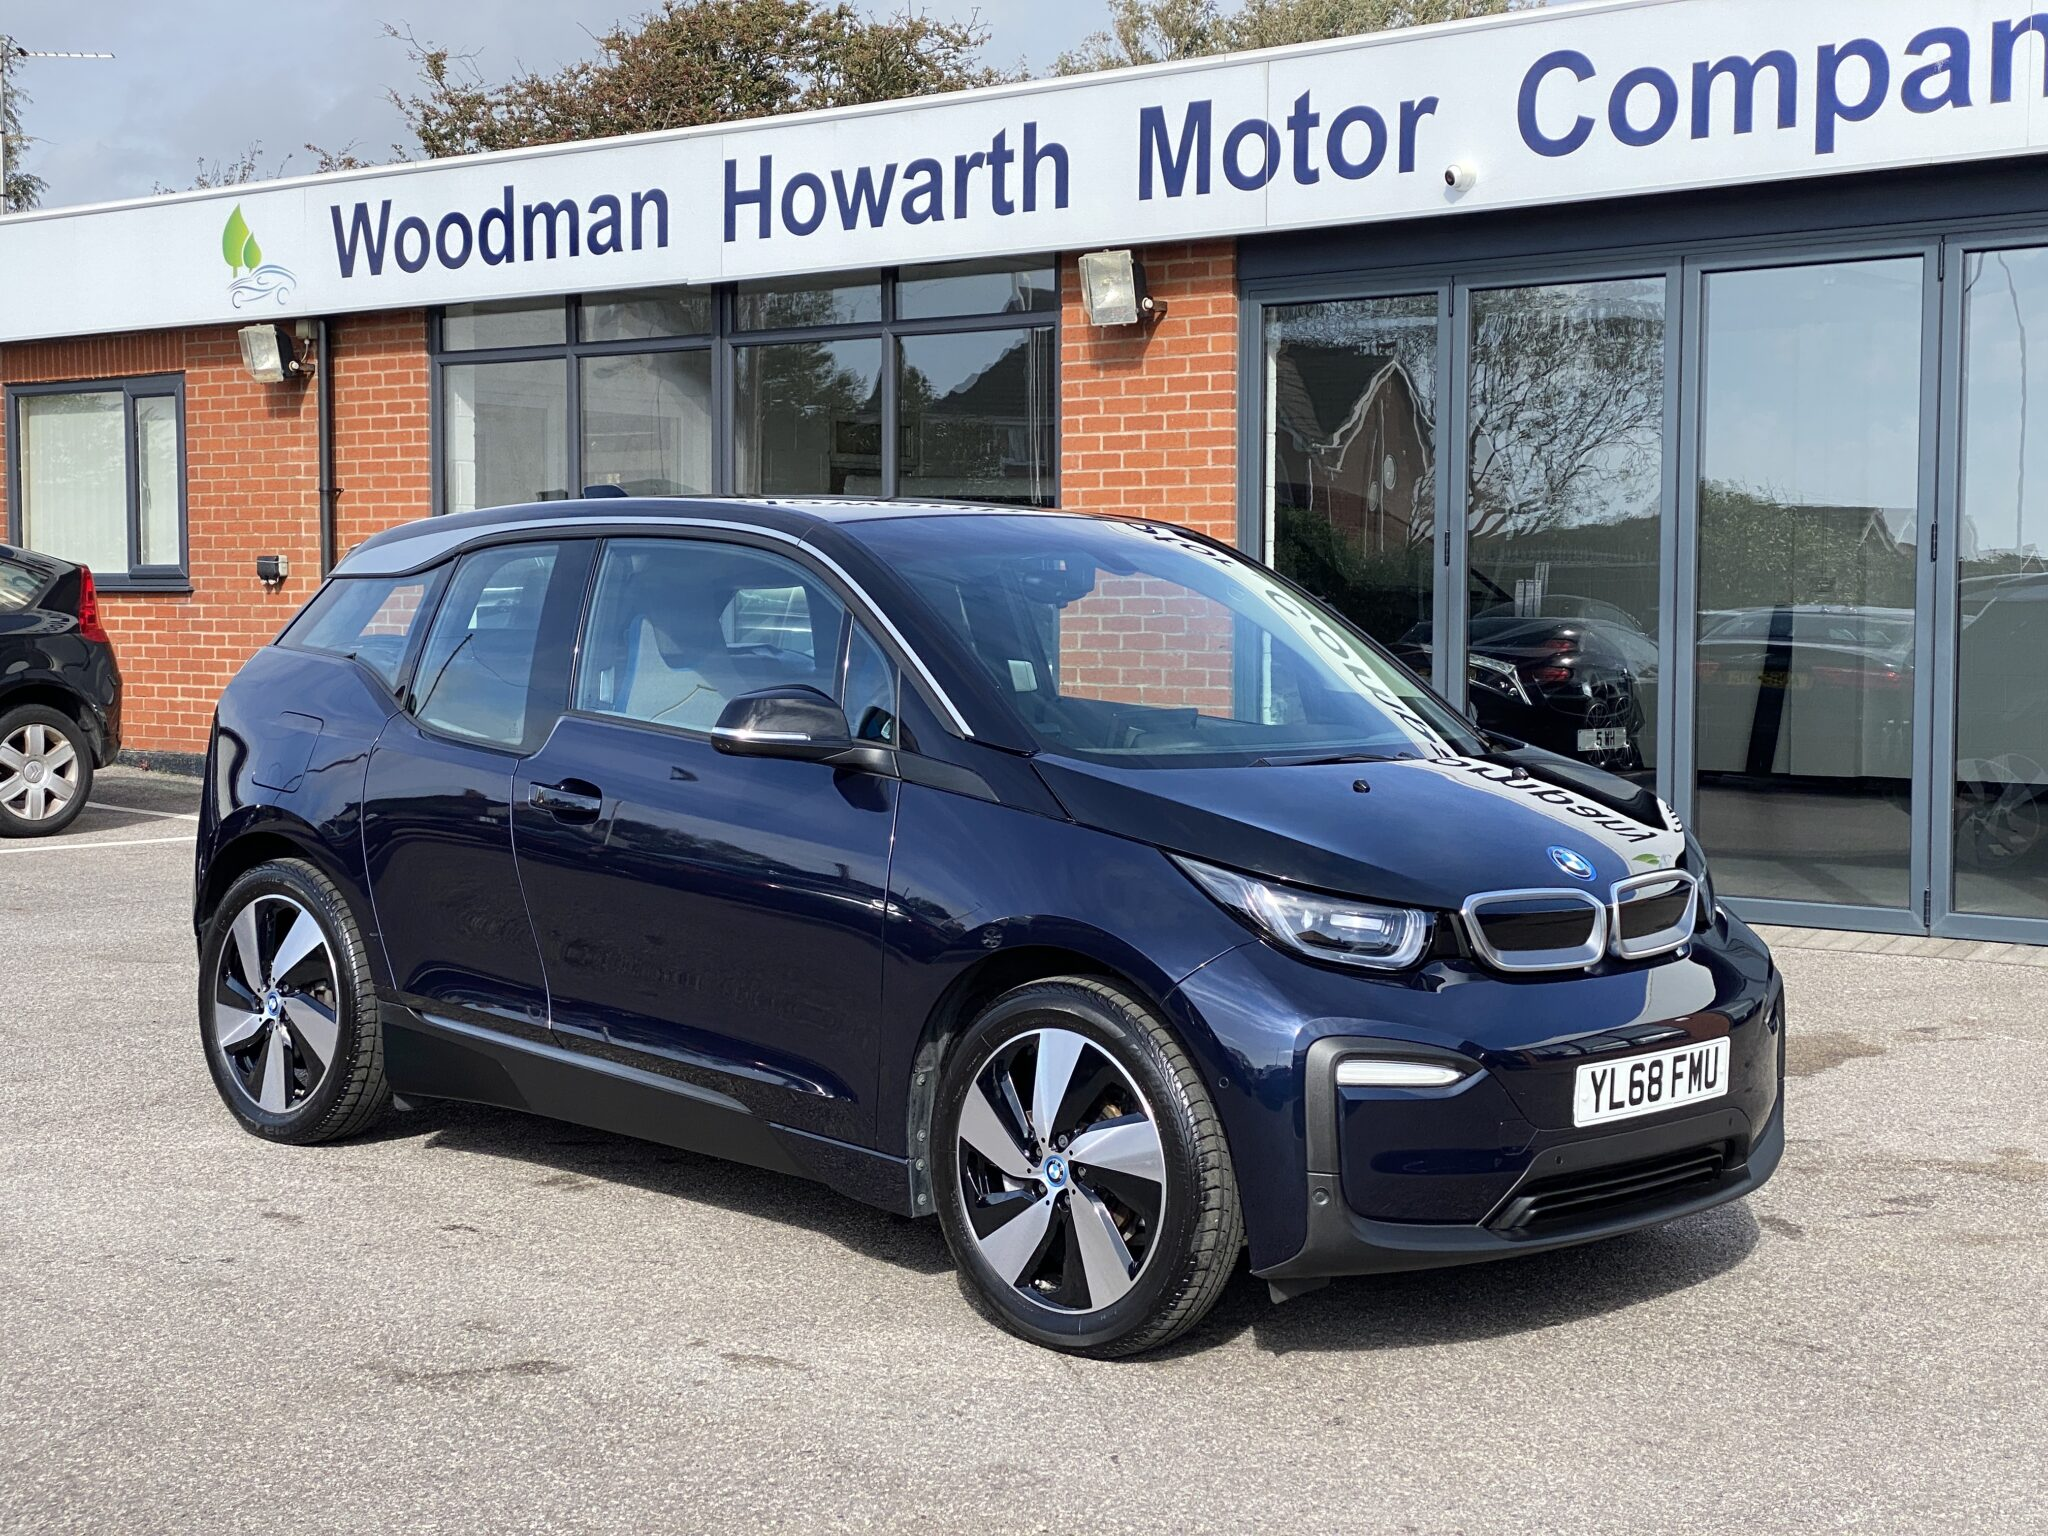 2018 68 BMW i3 120AH ELECTRIC VEHICLE Only 3500 Miles Reverse Camera Pro Nav High Spec